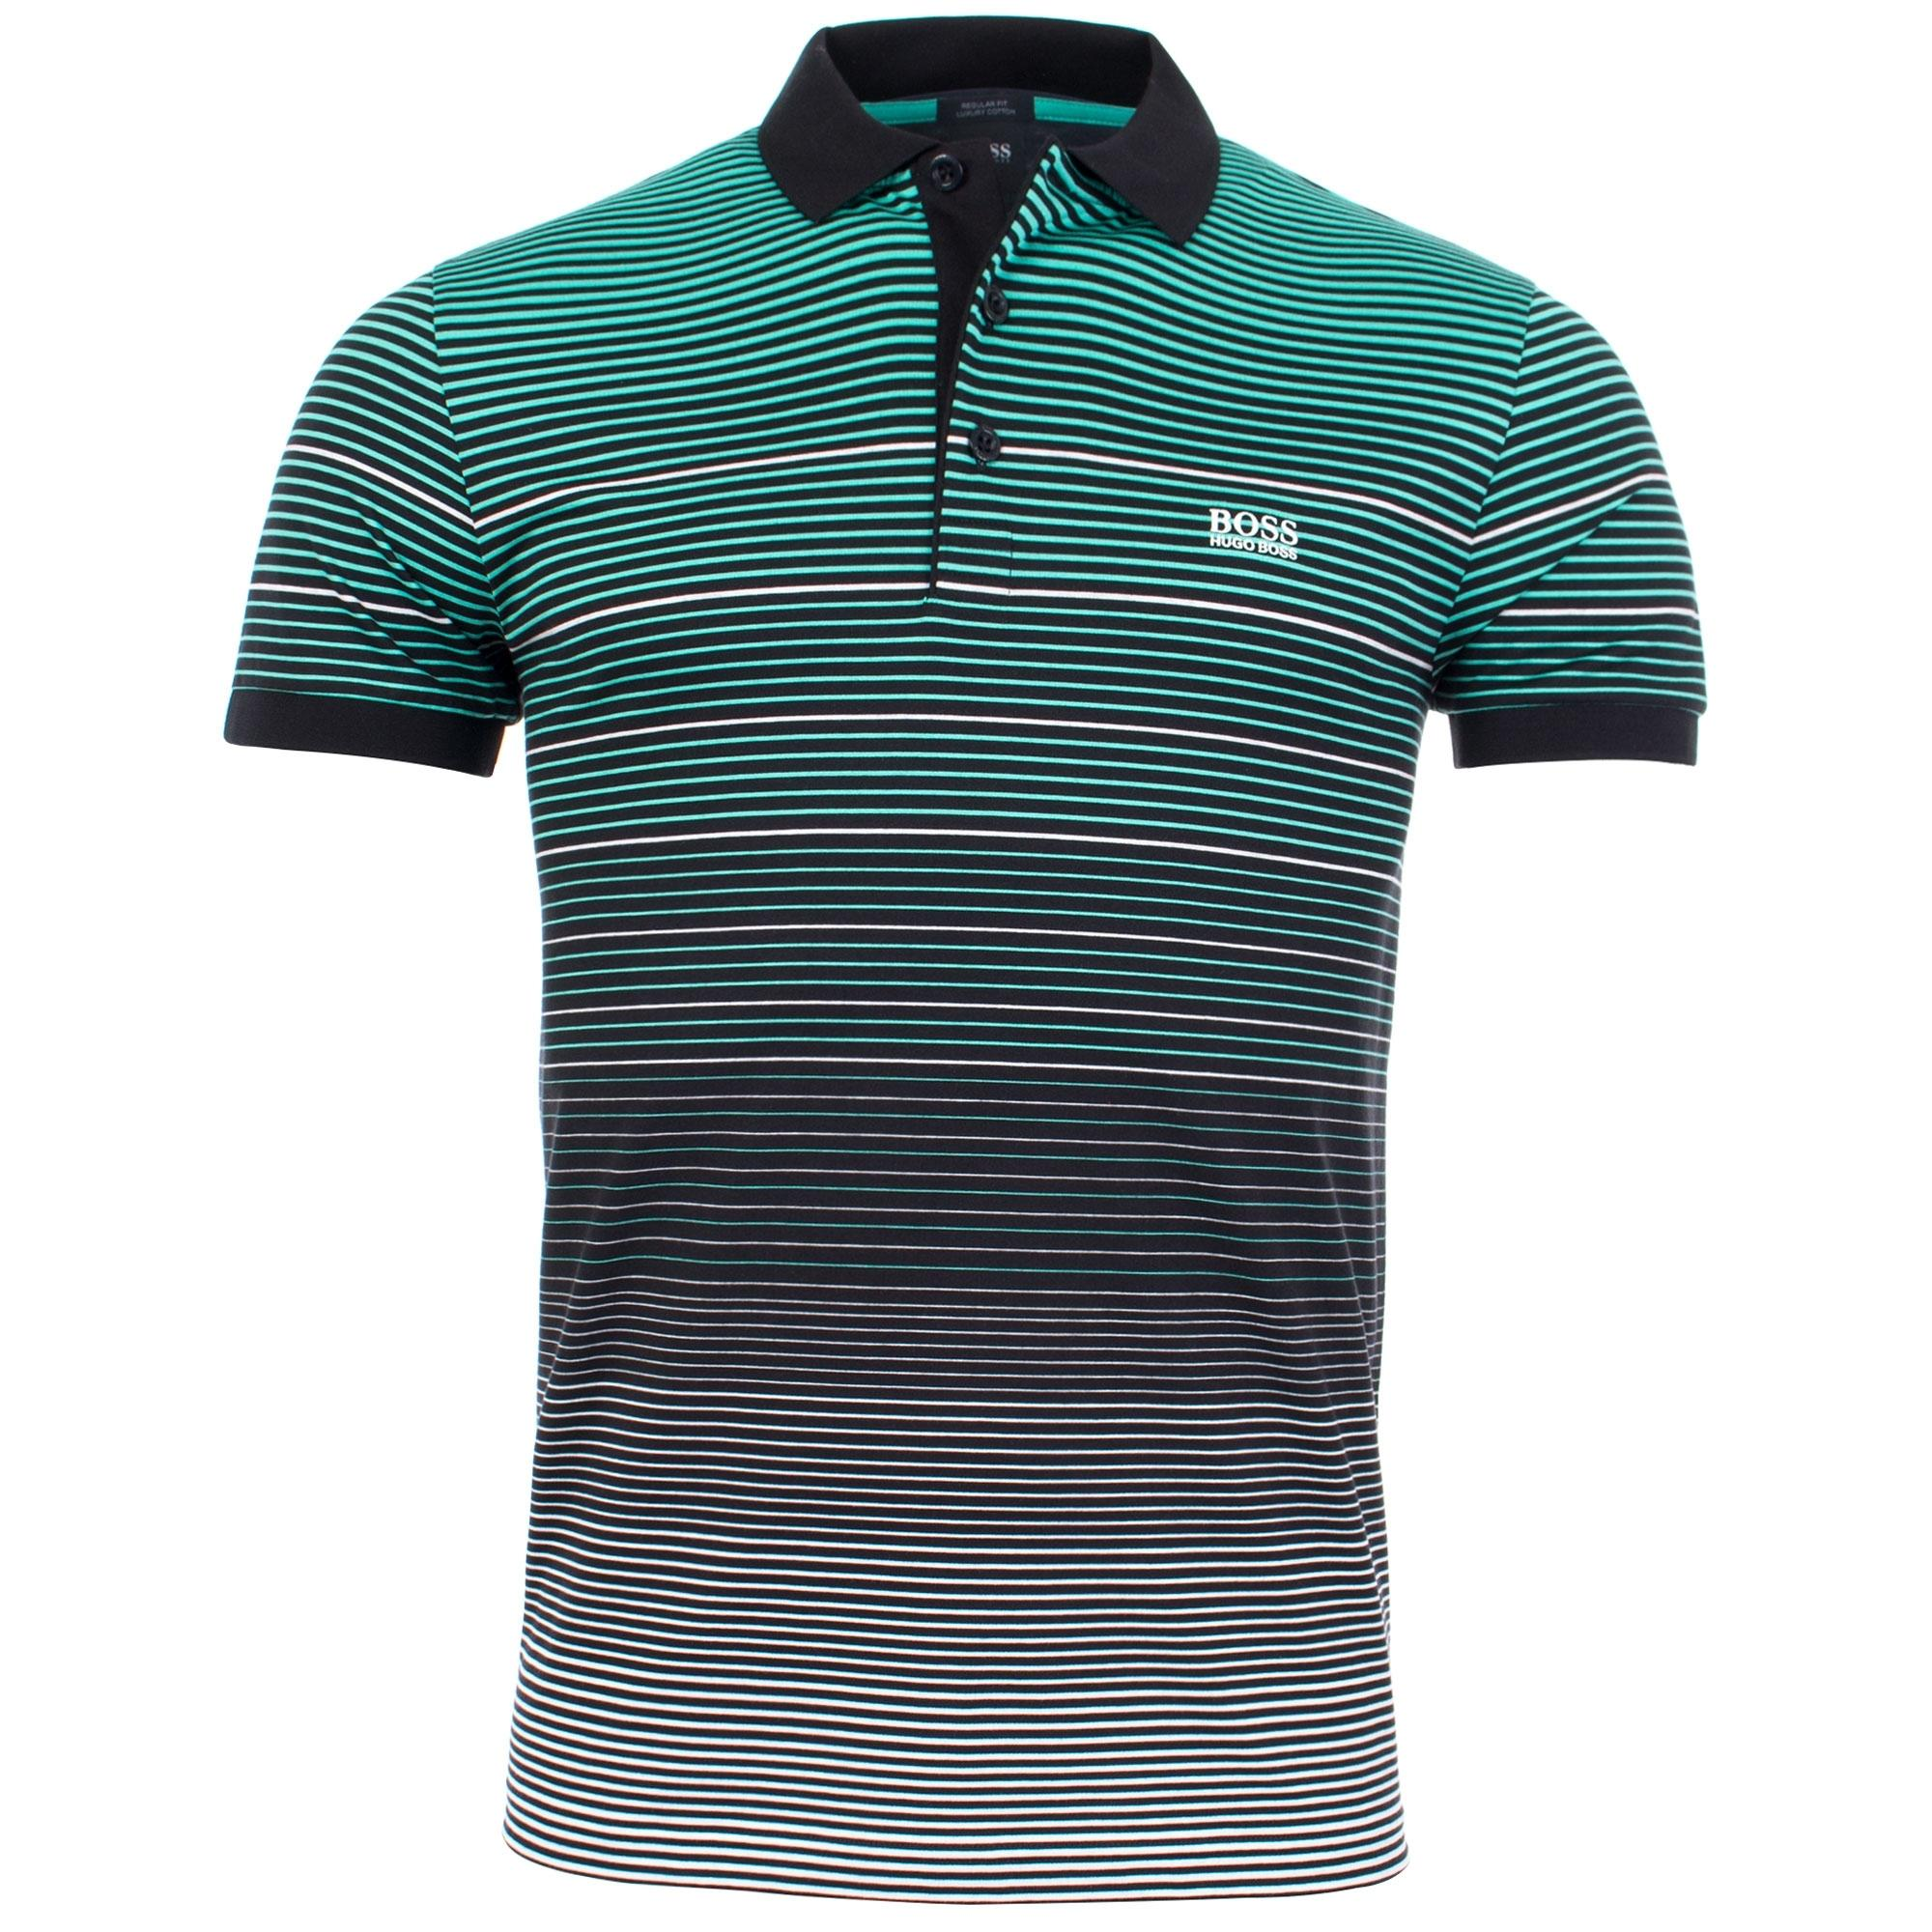 e2441f6f6 BOSS Athleisure Paddy 3 Engineered Multi Stripe Polo in Green for ...